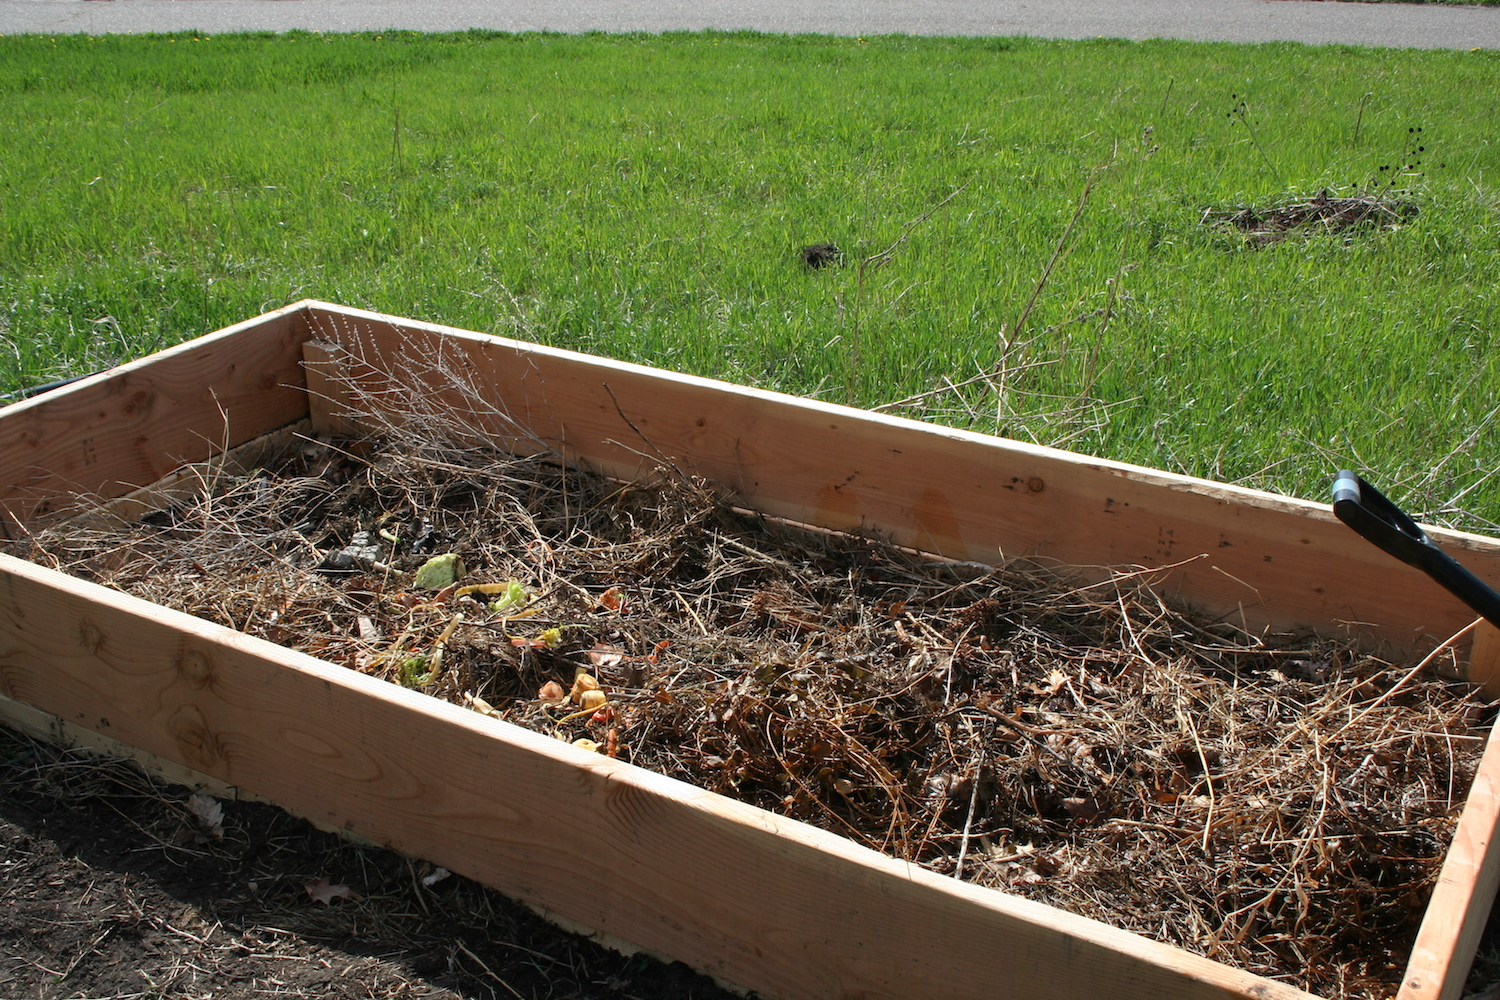 raised bed with decomposing plants